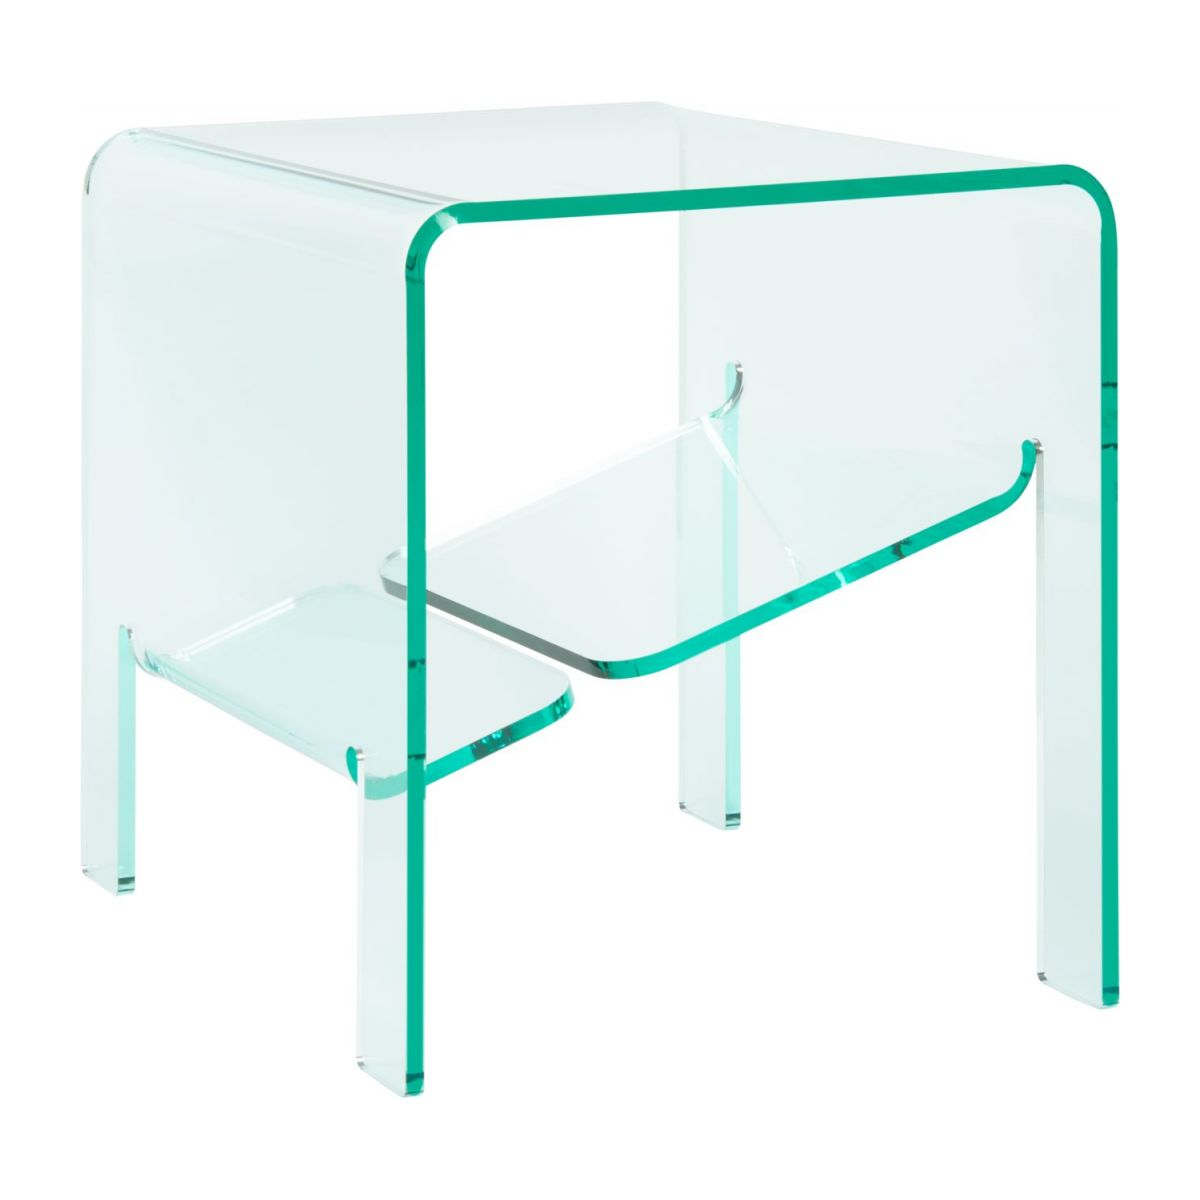 Table d'appoint en acrylique transparente n°1